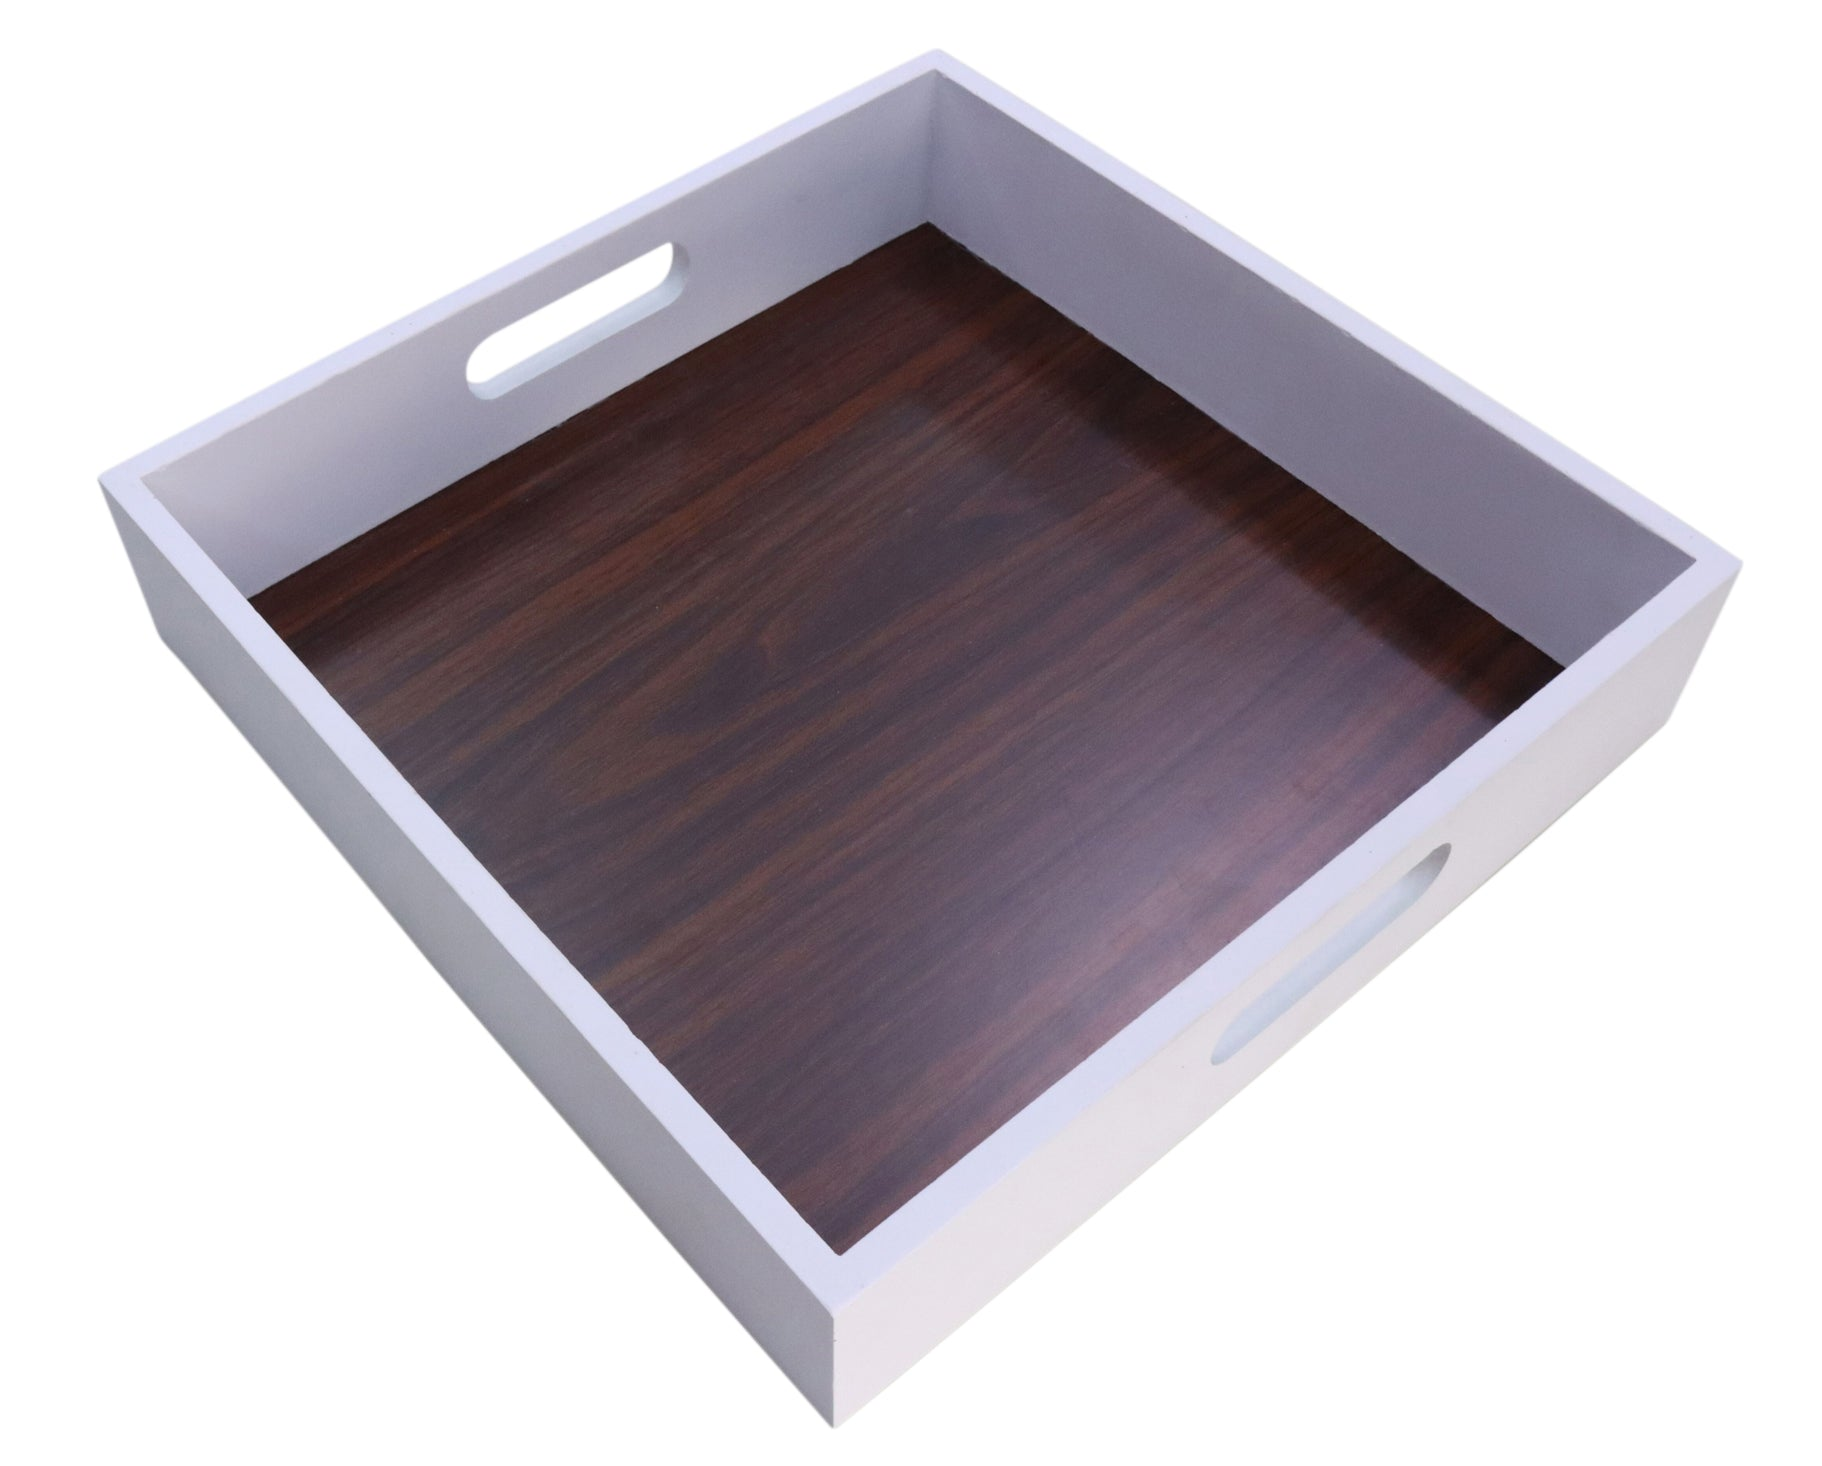 Square White Serving Tray w/Wood Grain Inlay Interior-Wald Imports